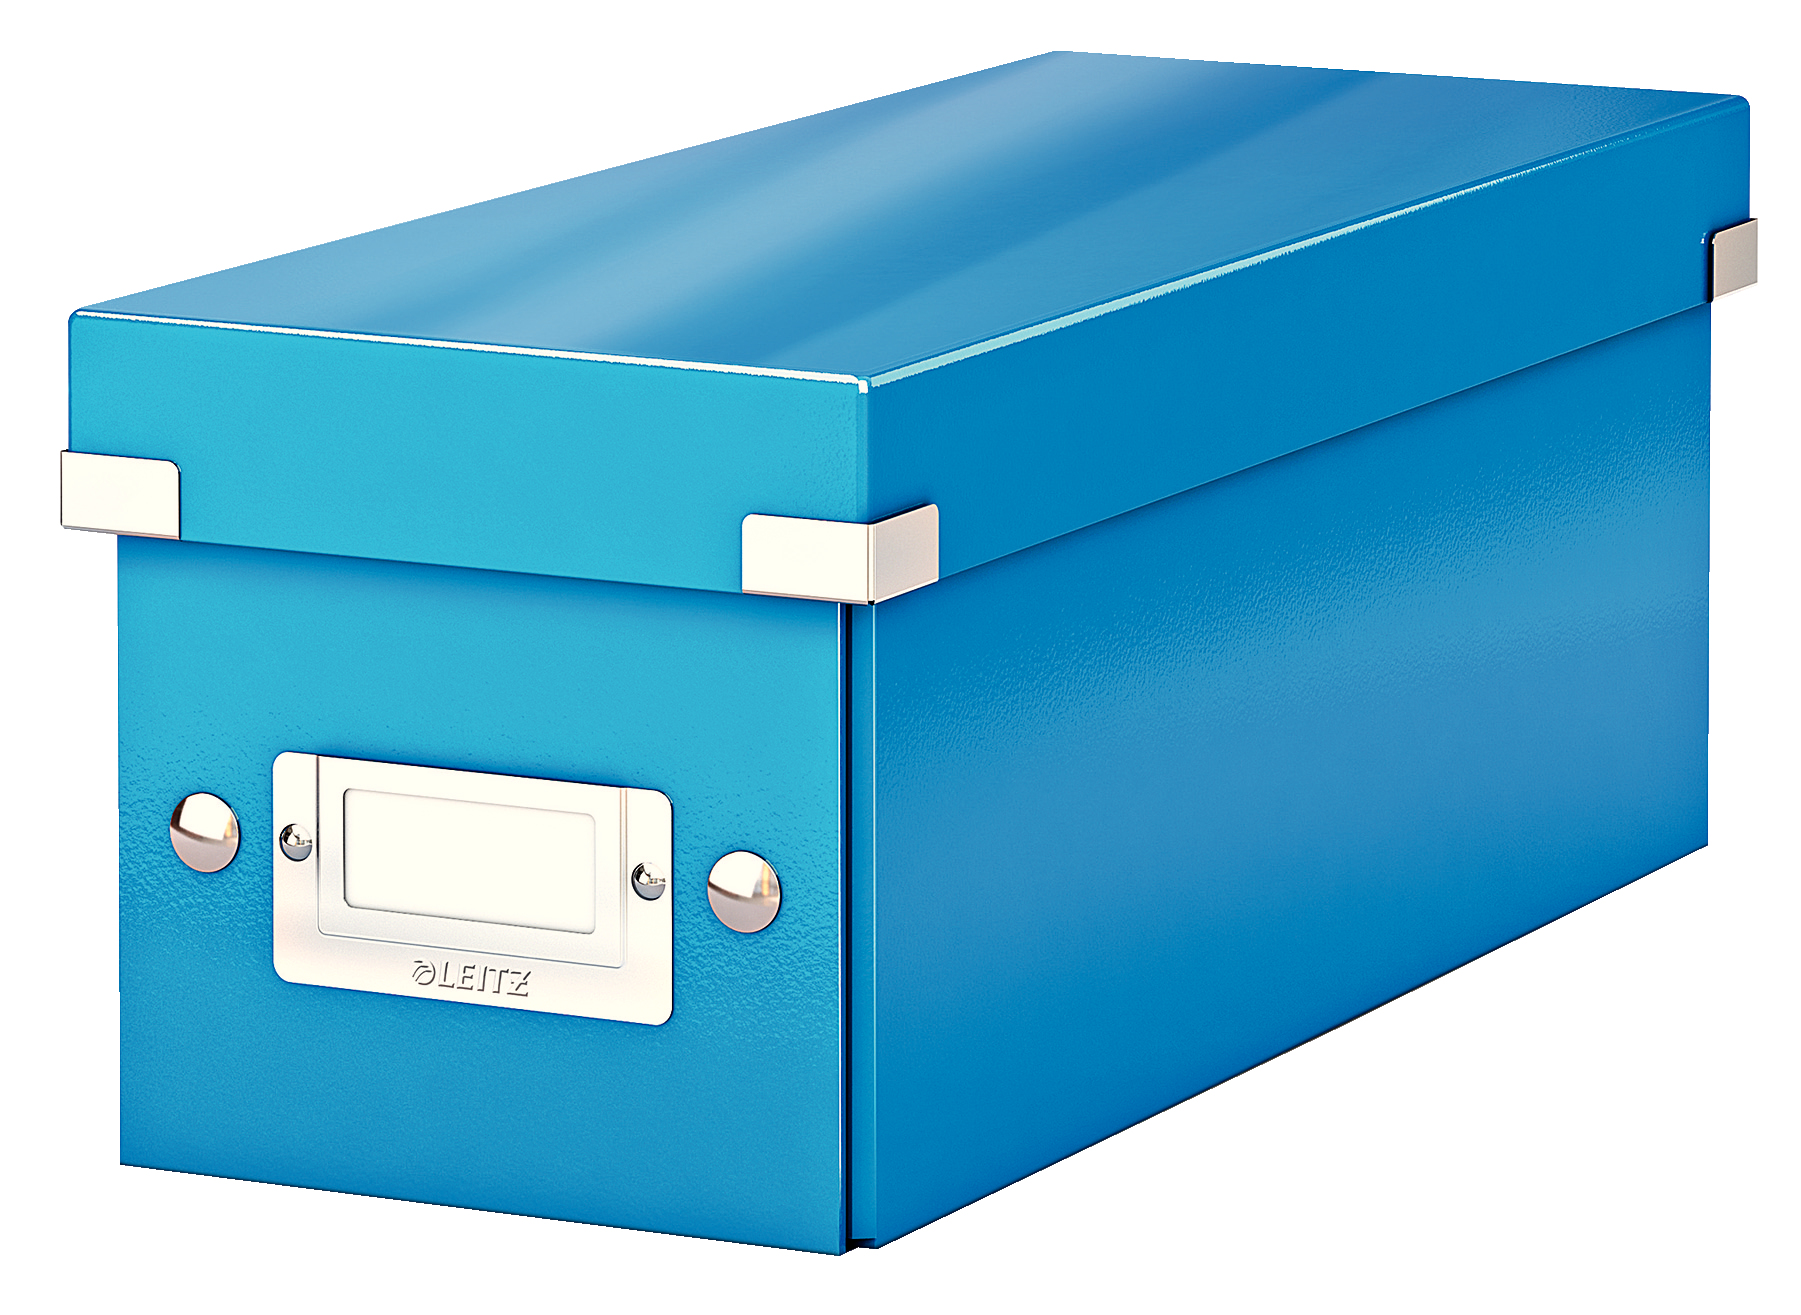 esselte Leitz Click & Store Cd Storage Box Blue 60410036 - AD01